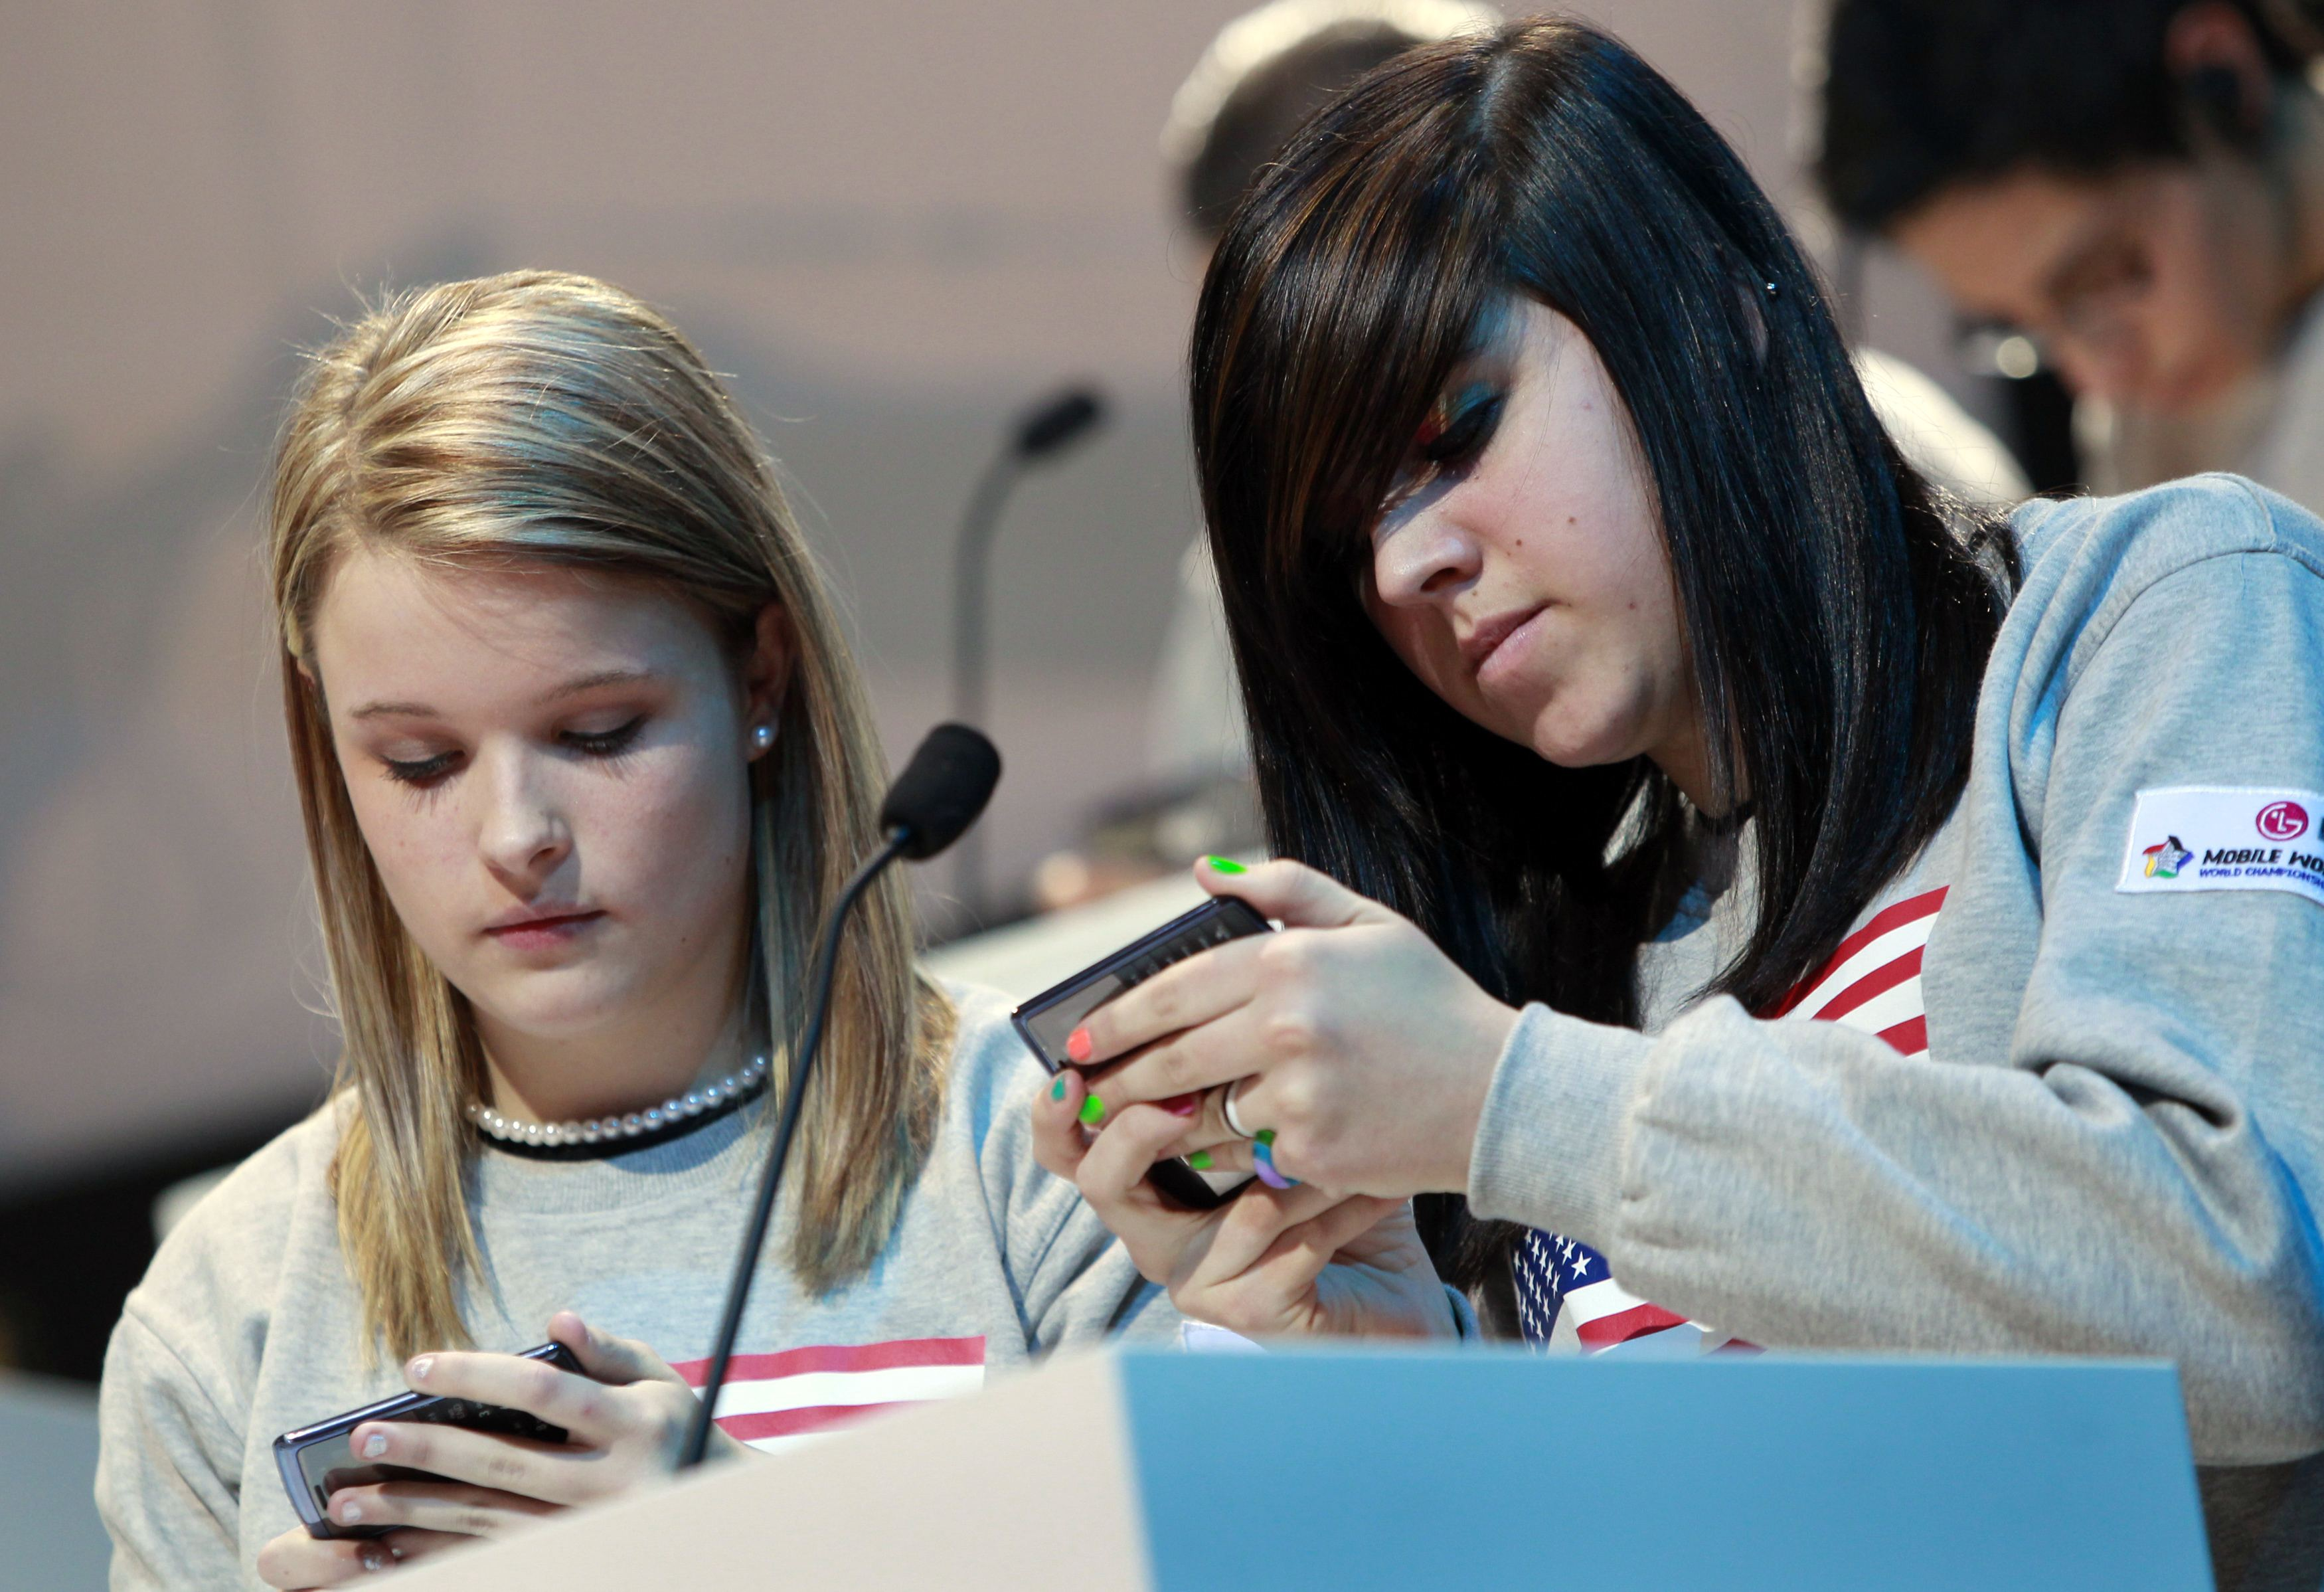 File photo of contestants competing in the the LG Mobile Worldcup Texting Championship in New York